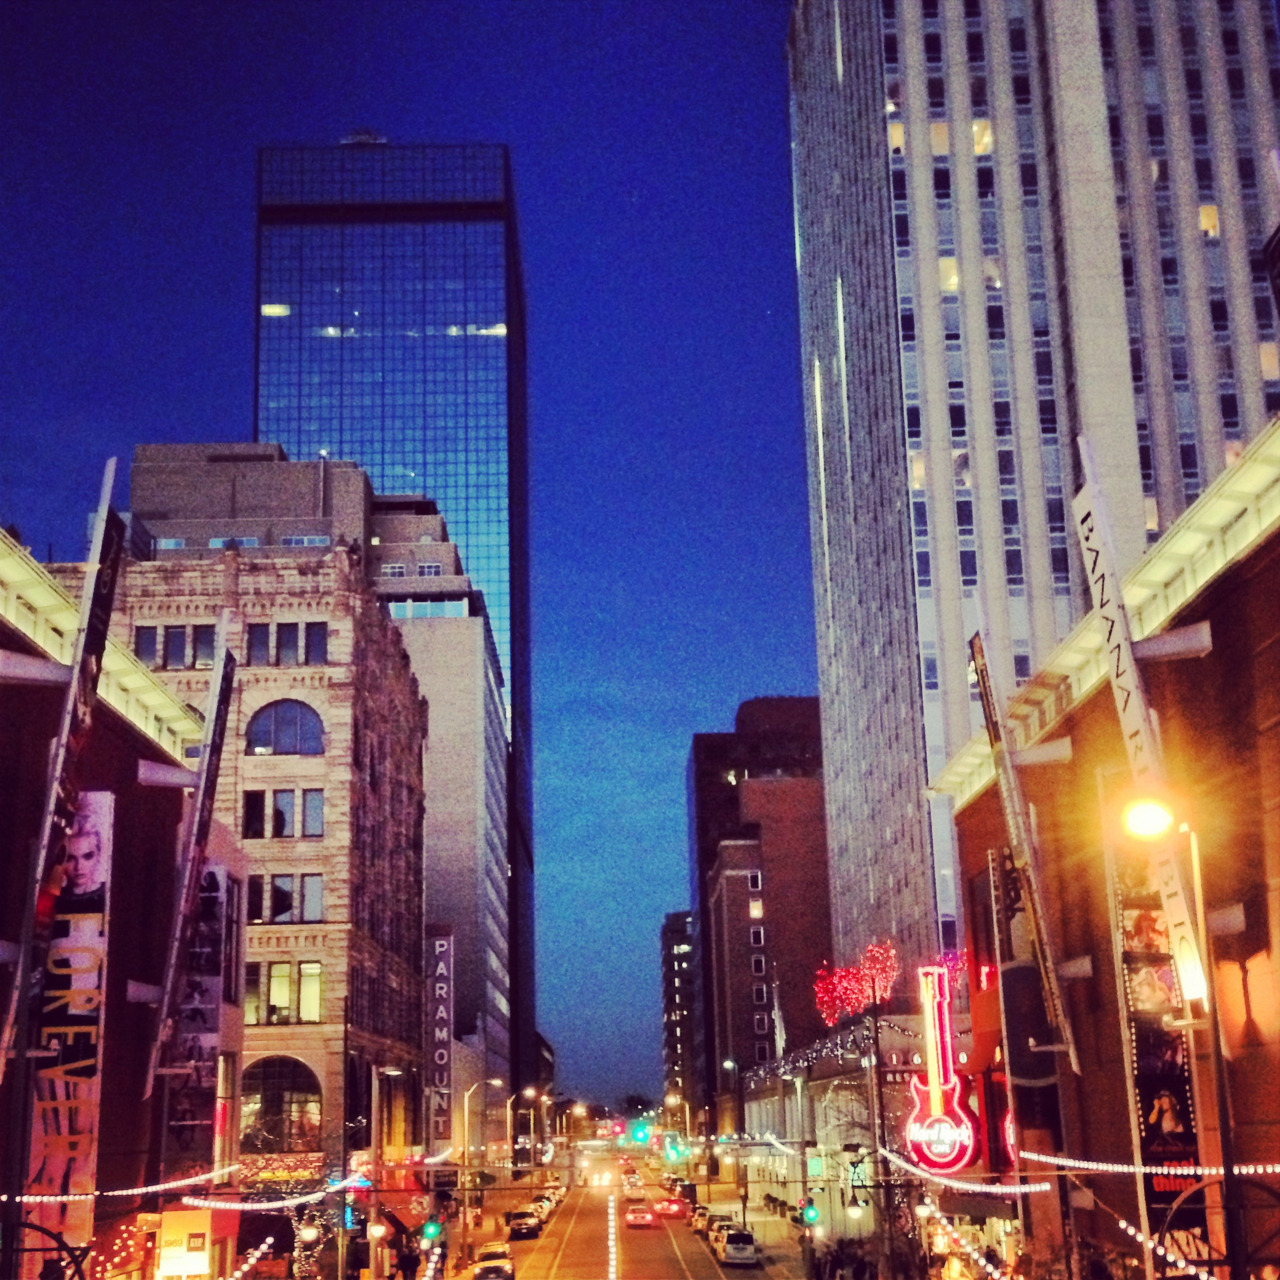 Downtown Denver at dusk. #denver #citystreets #cityscape